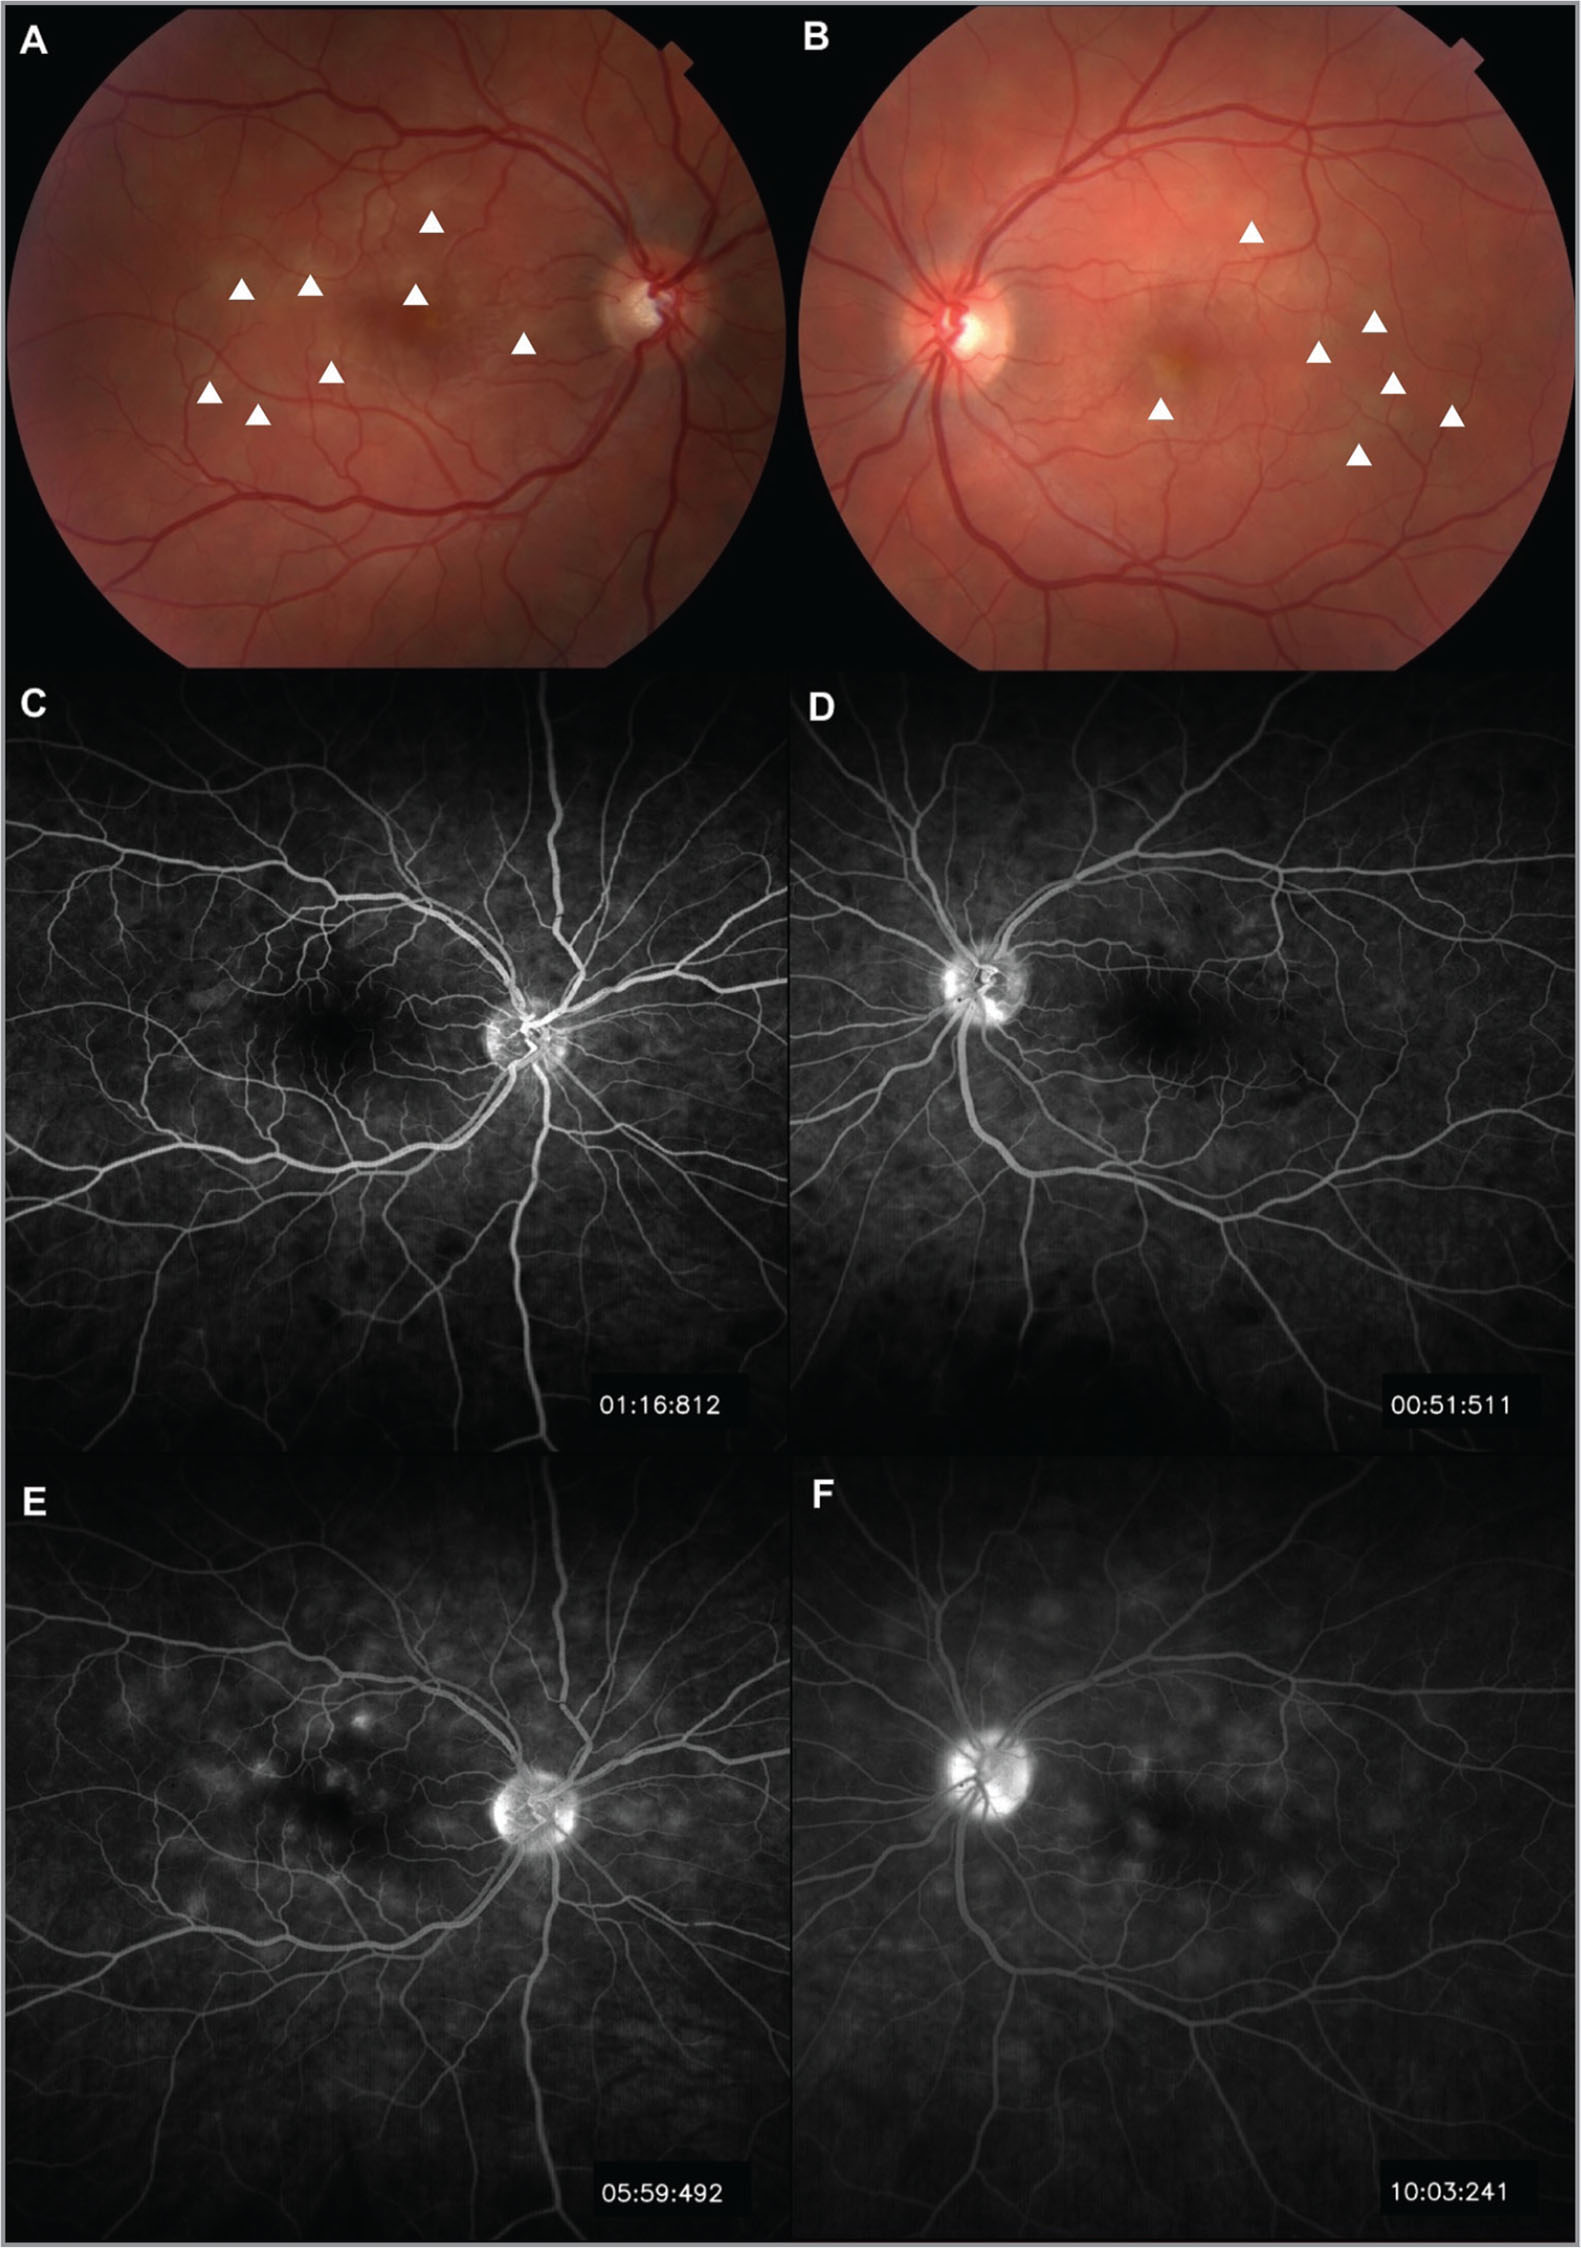 Color fundus photographs showing multiple round, creamy plaques (white arrowheads) concentrated mostly in the posterior pole in both eyes (A, B). Fluorescein angiography shows early blockage and late staining of these lesions (C–F).